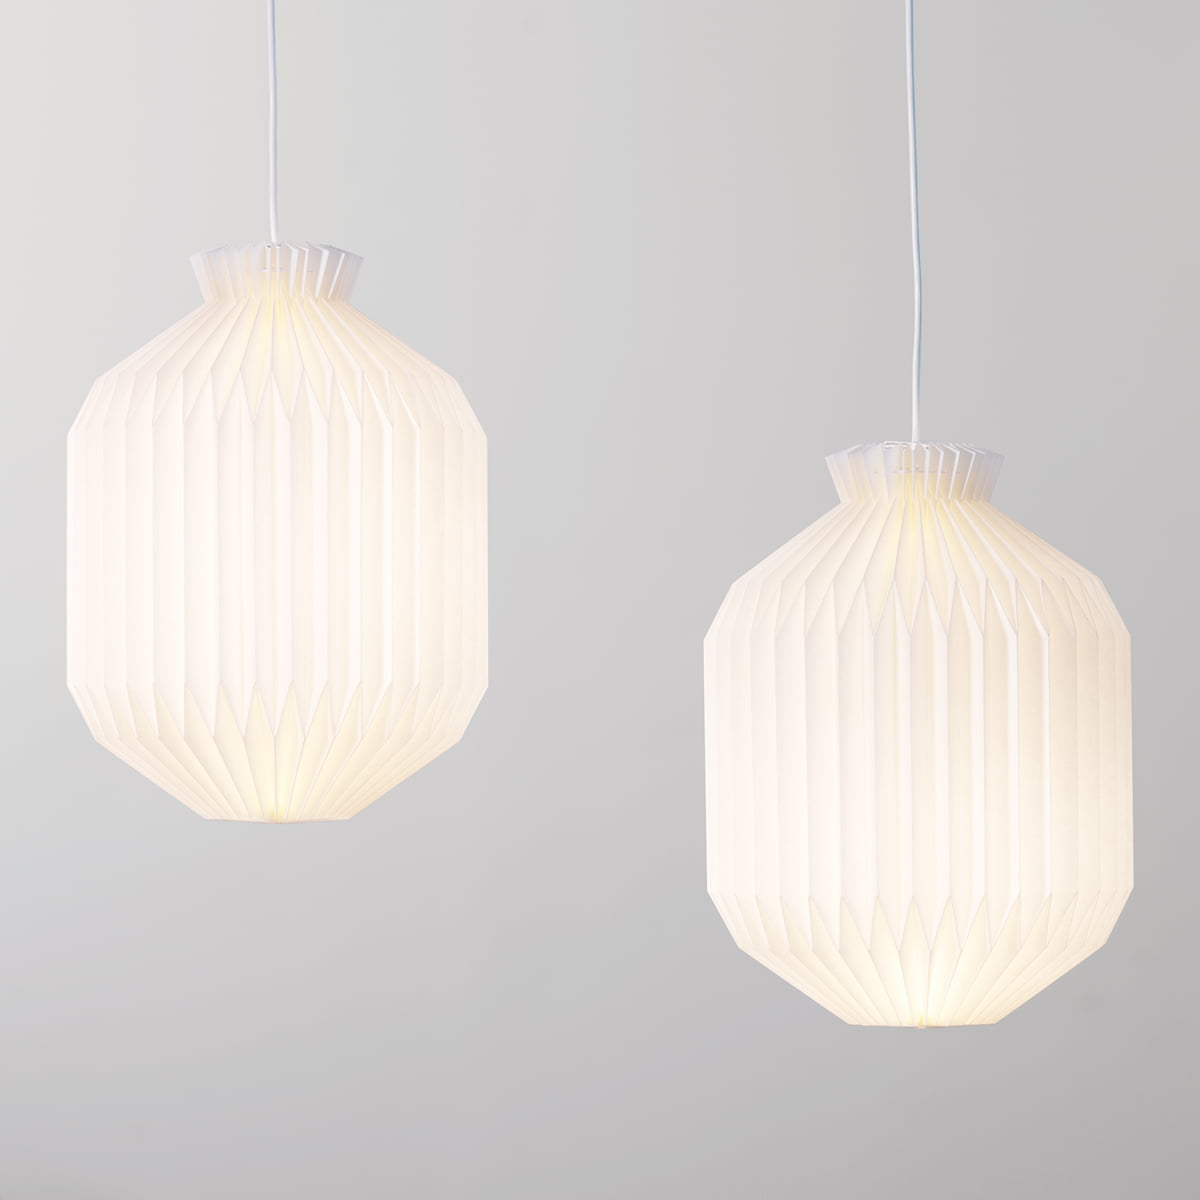 Le Klint Pendant Replica 105 Pendant Lamp By Le Klint In The Shop